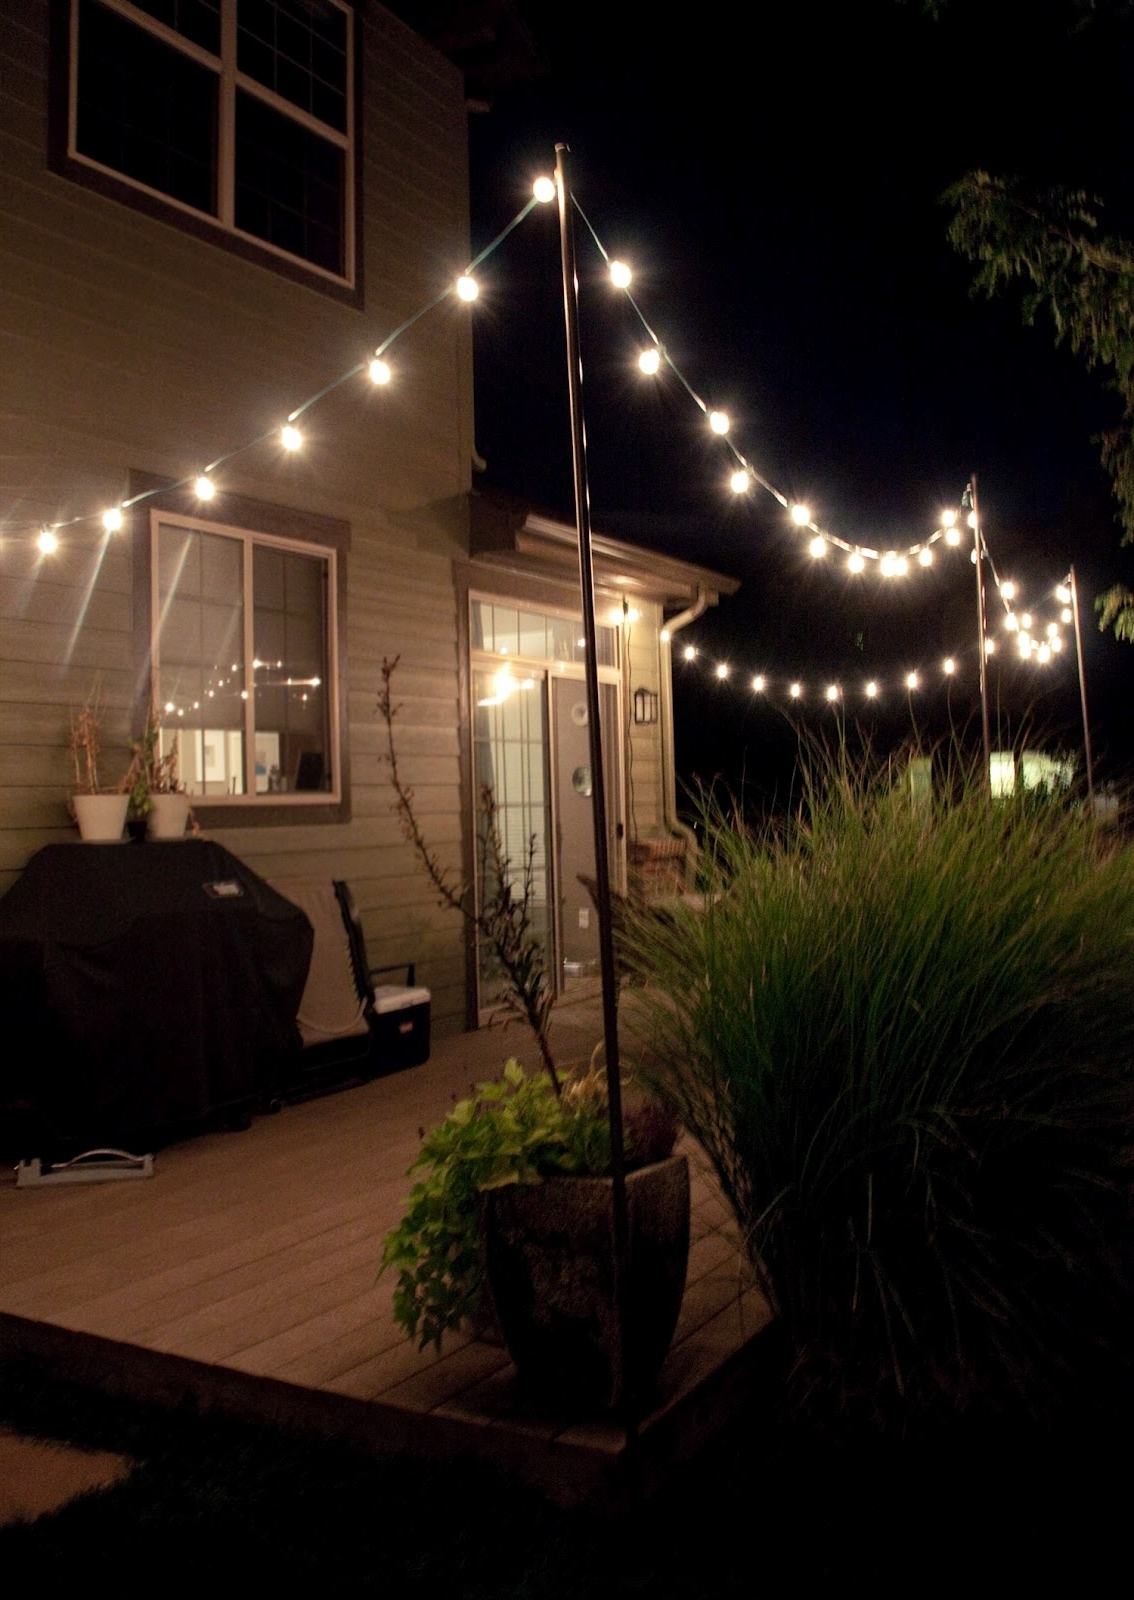 Easy Intended For Most Popular Outdoor Hanging Deck Lights (View 4 of 20)